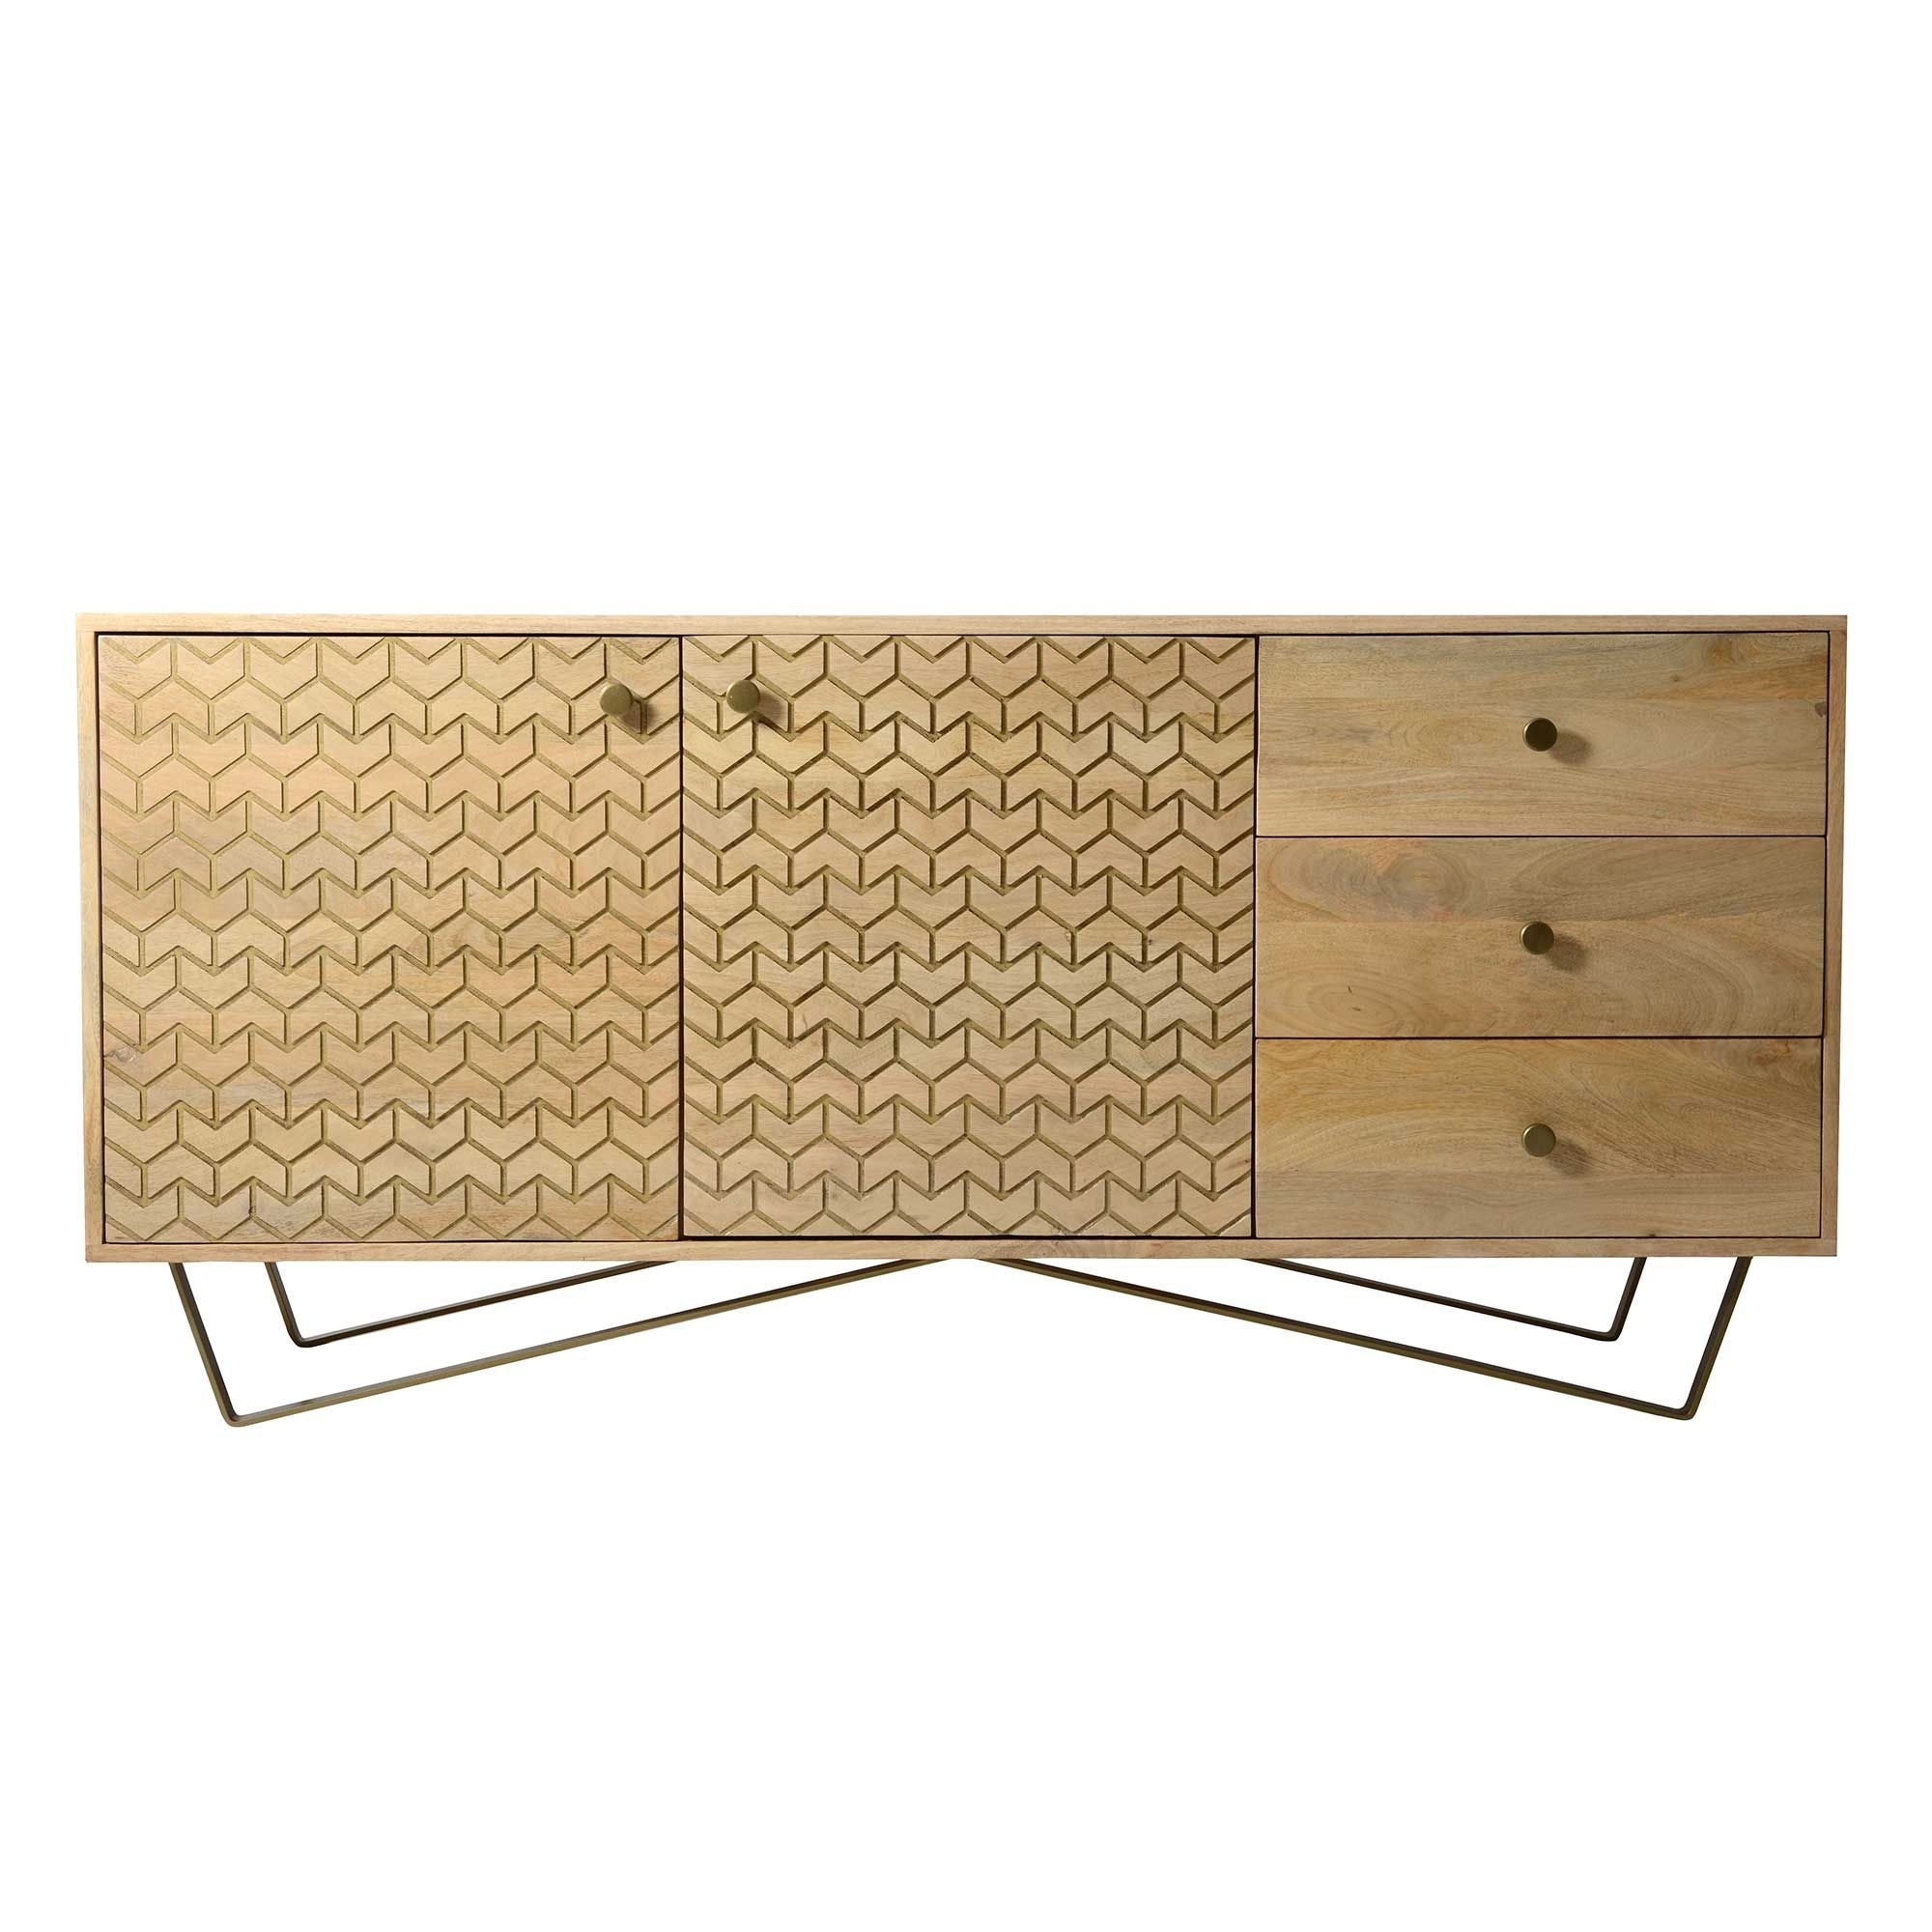 Drupe 3 Drawer 2 Door Sideboard, Mango Wood And Brass | Special regarding 3-Drawer/2-Door Sideboards (Image 9 of 30)